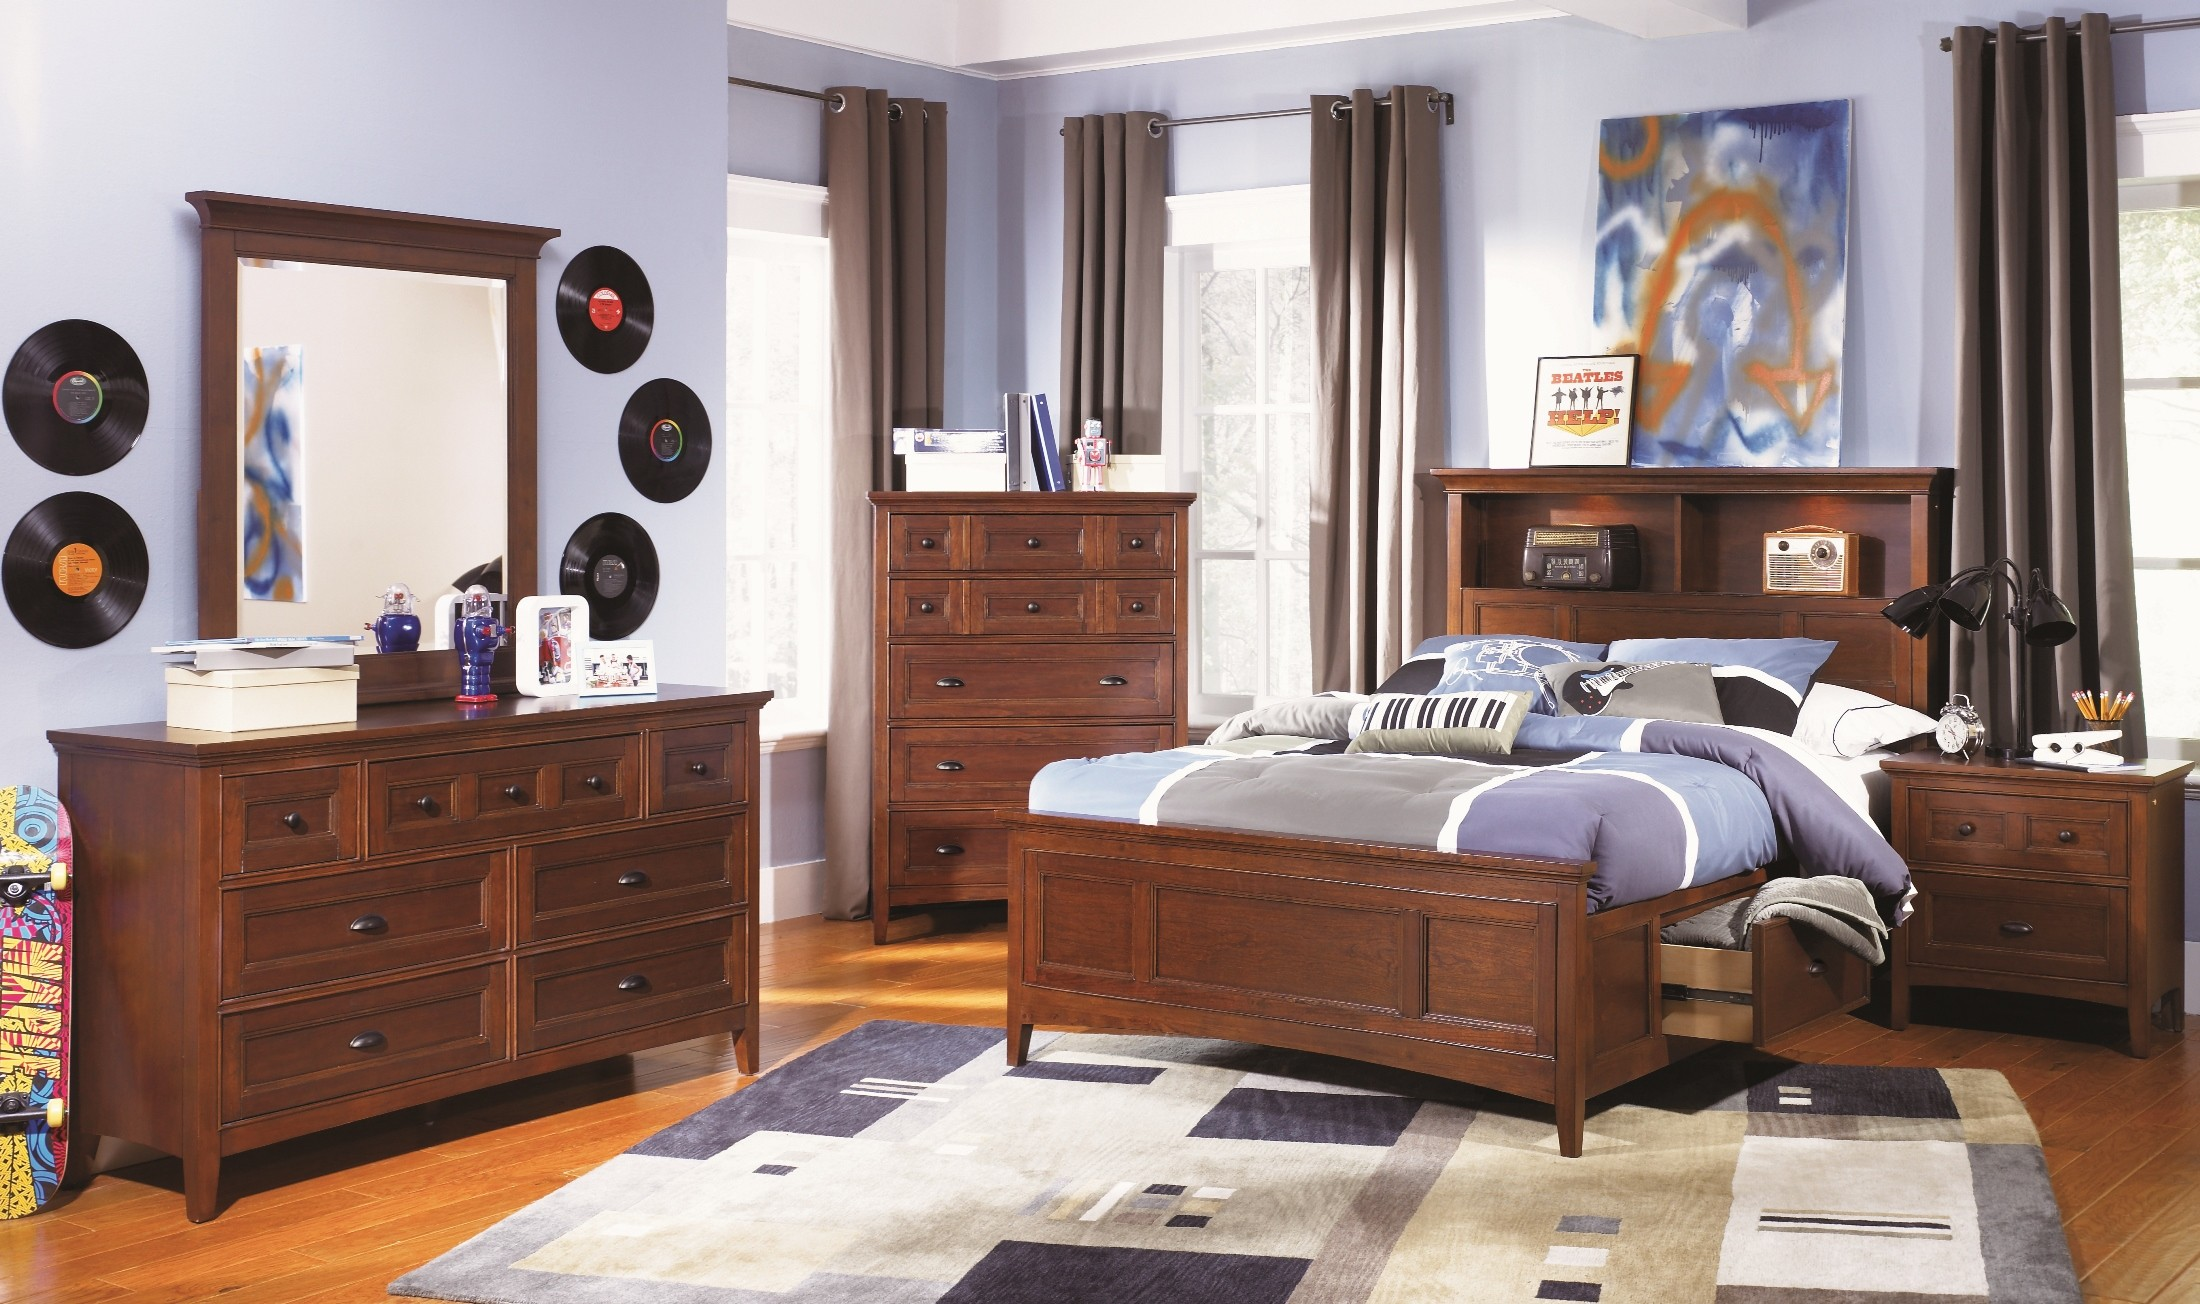 Riley youth bookcase storage bedroom set from magnussen home y1873 58h 54f 55r coleman furniture for Youth storage bedroom furniture